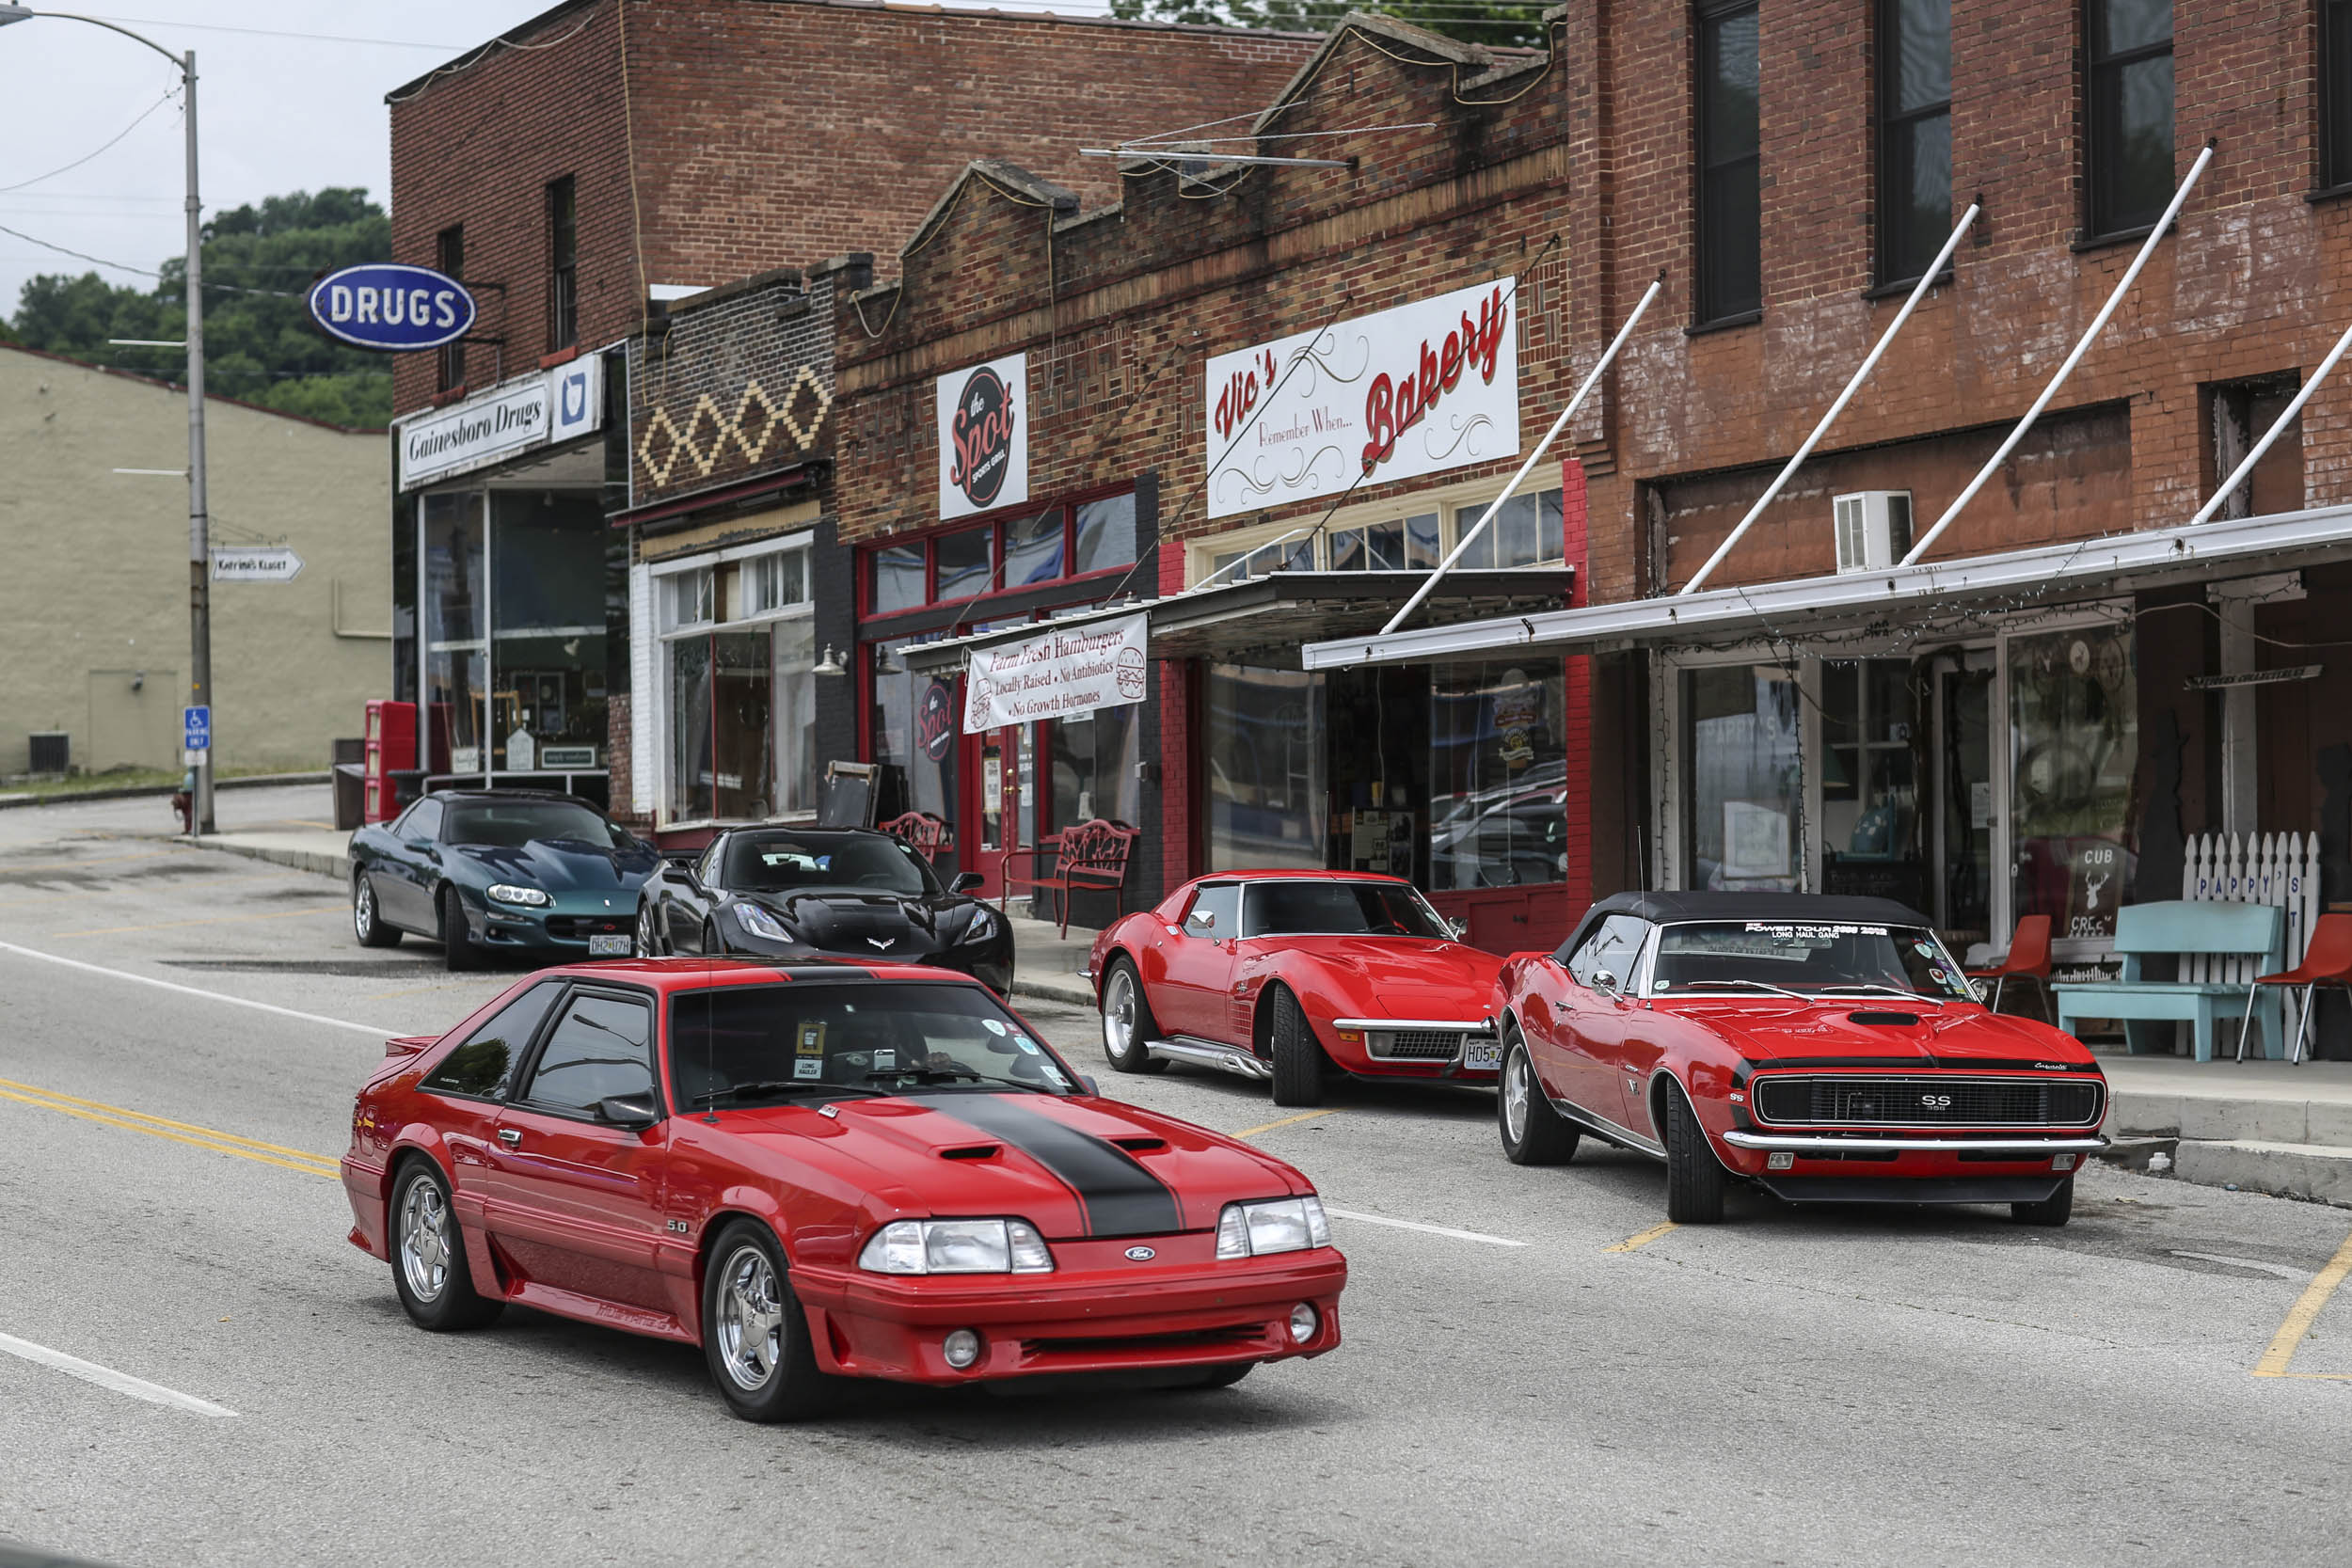 Performance cars line the block and fill the street. These kinds of scenes are common all along the Power Tour route.